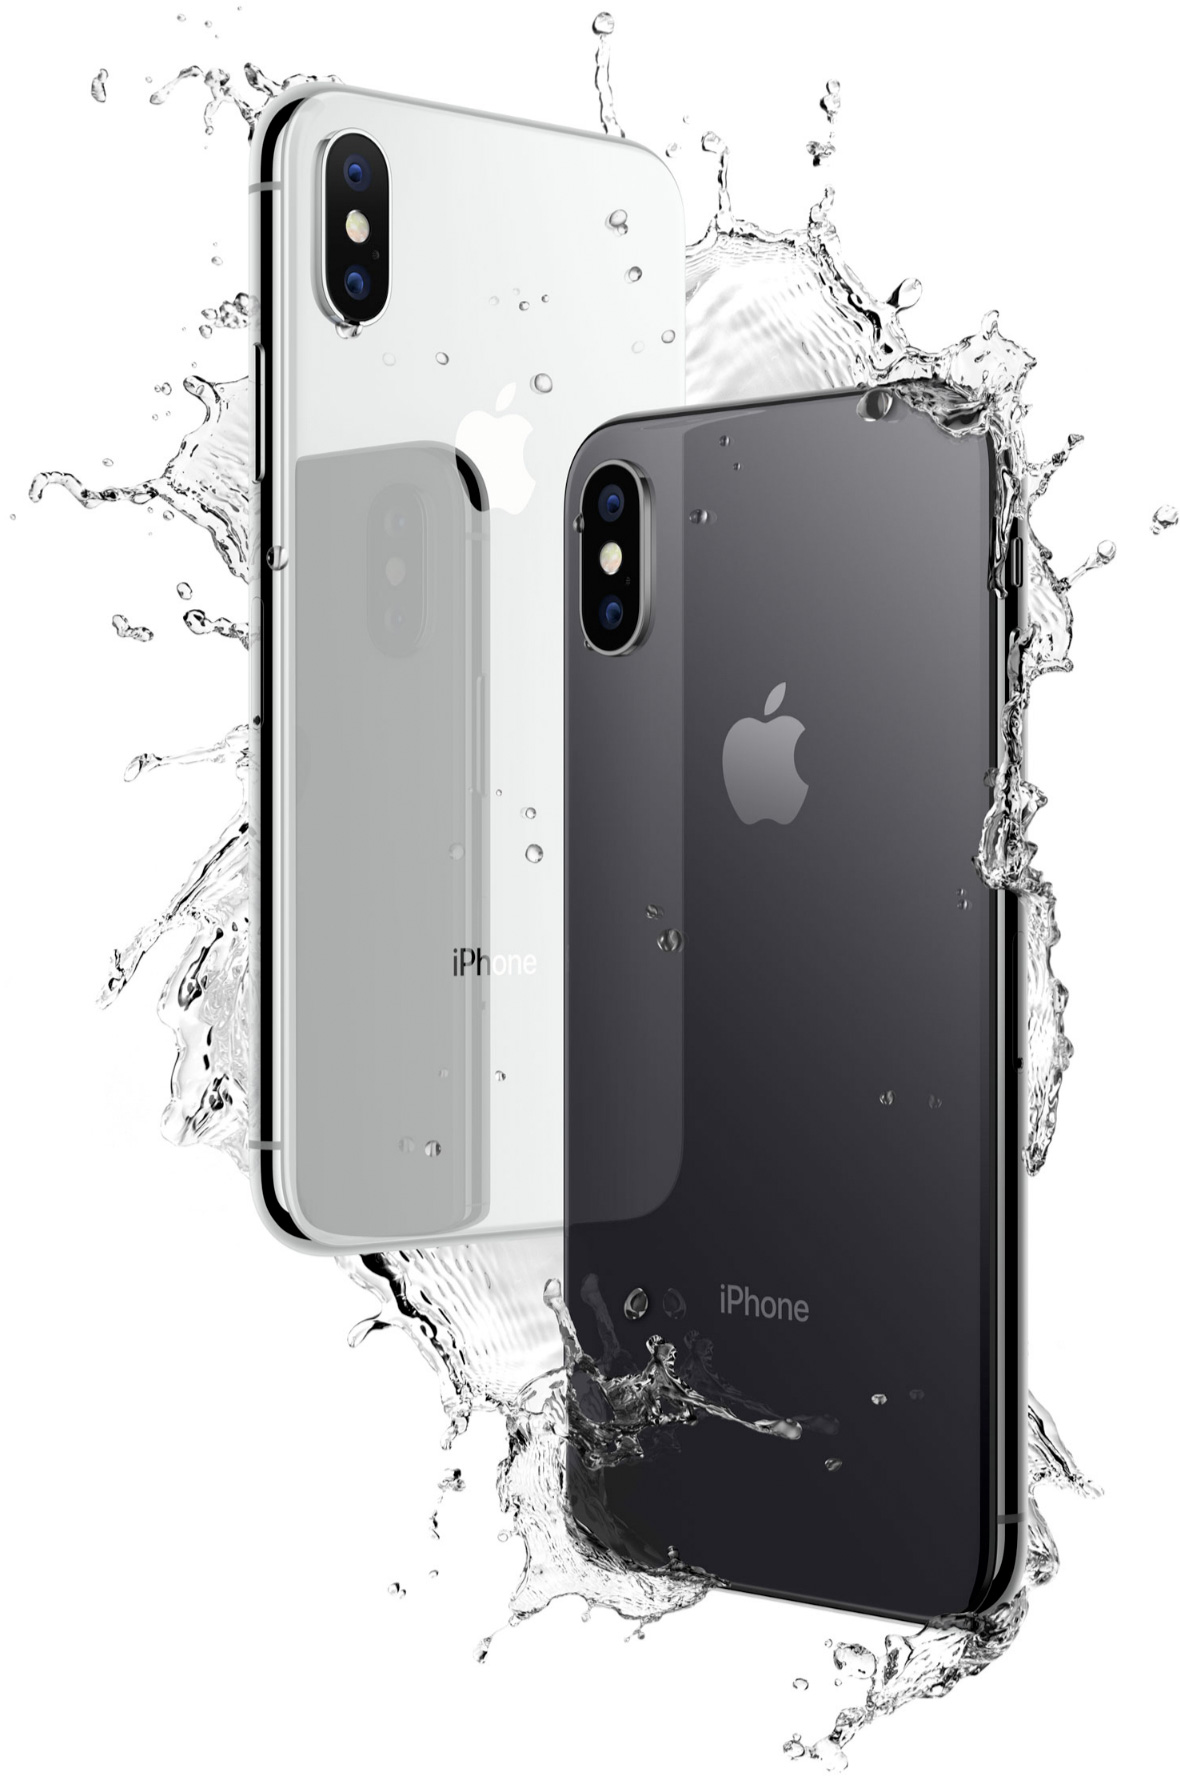 iPhone X resistente al agua